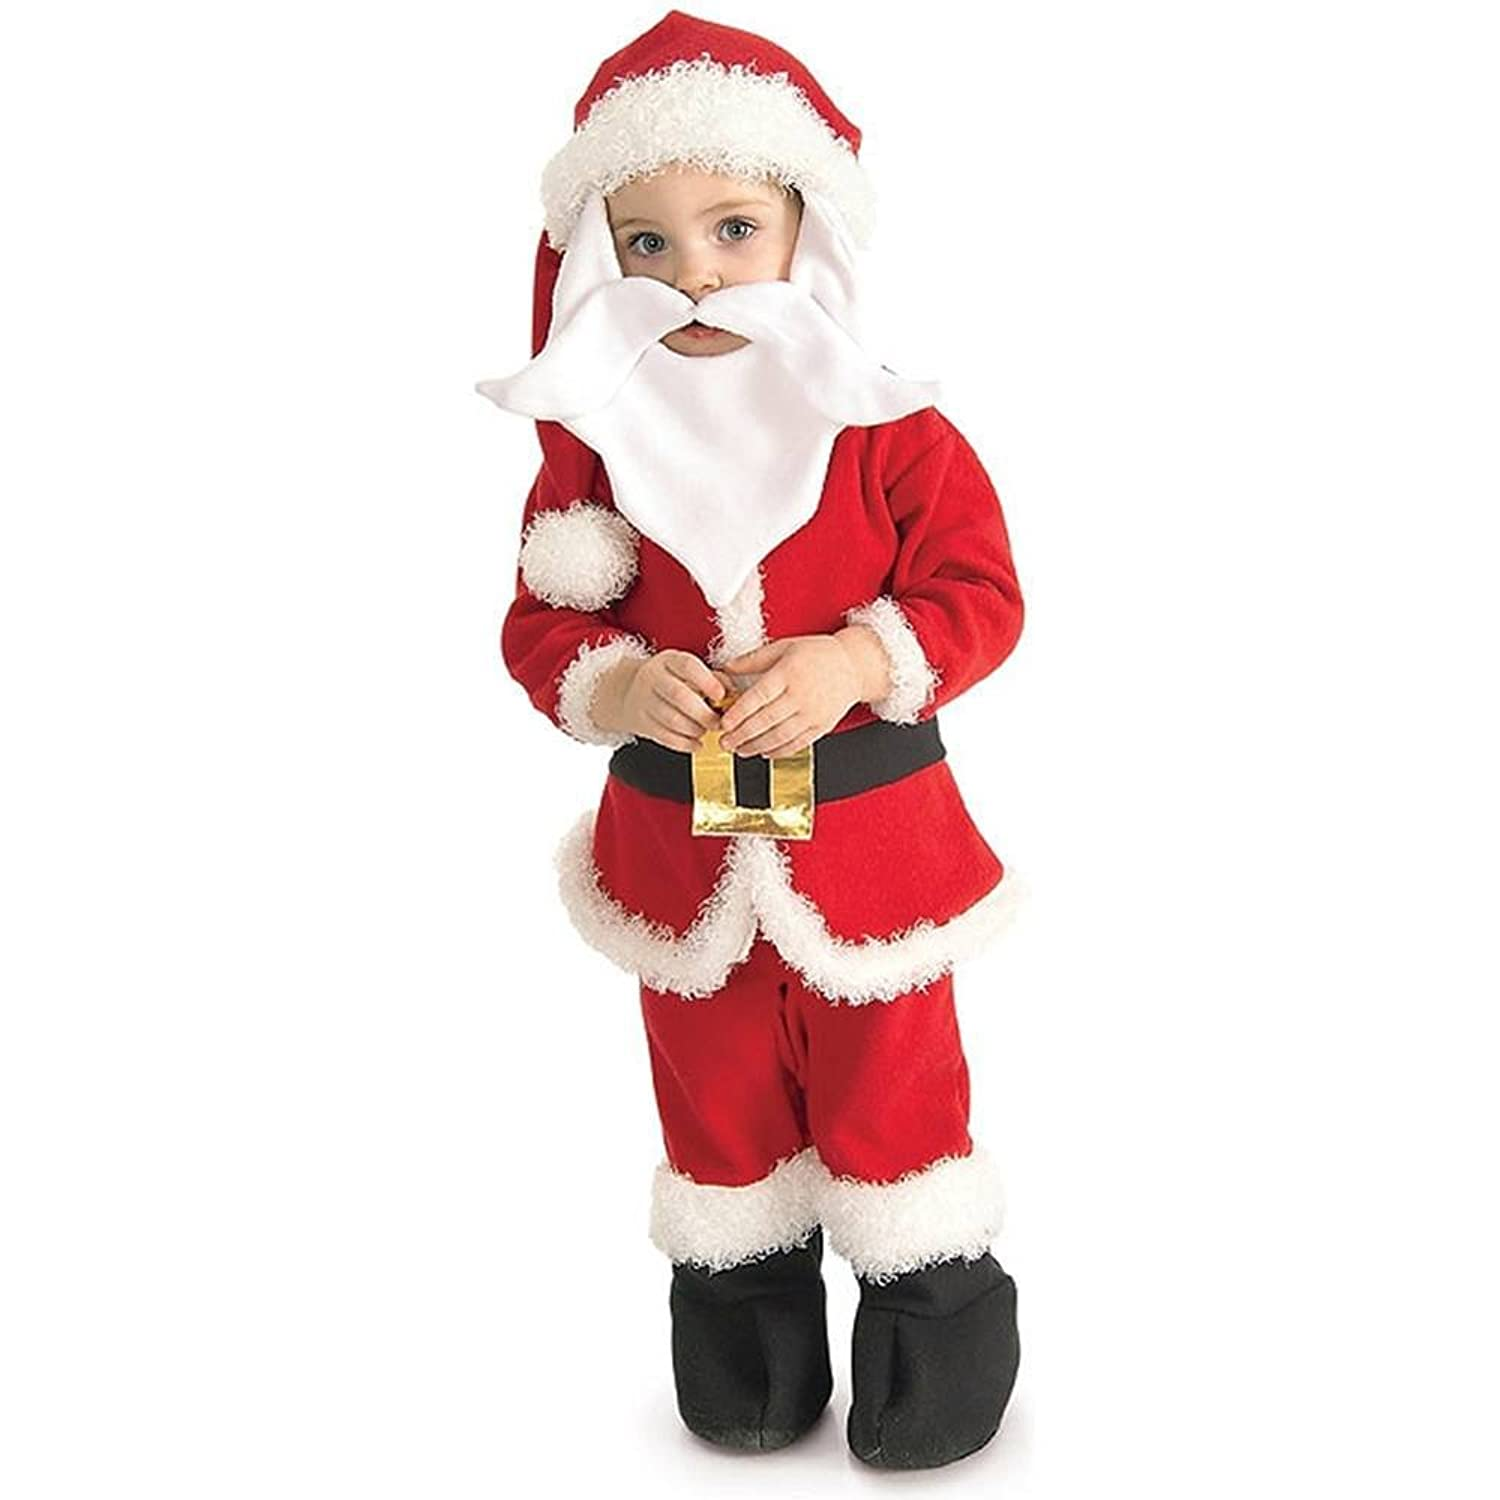 amazoncom santa toddler costume clothing - Santa Claus Children